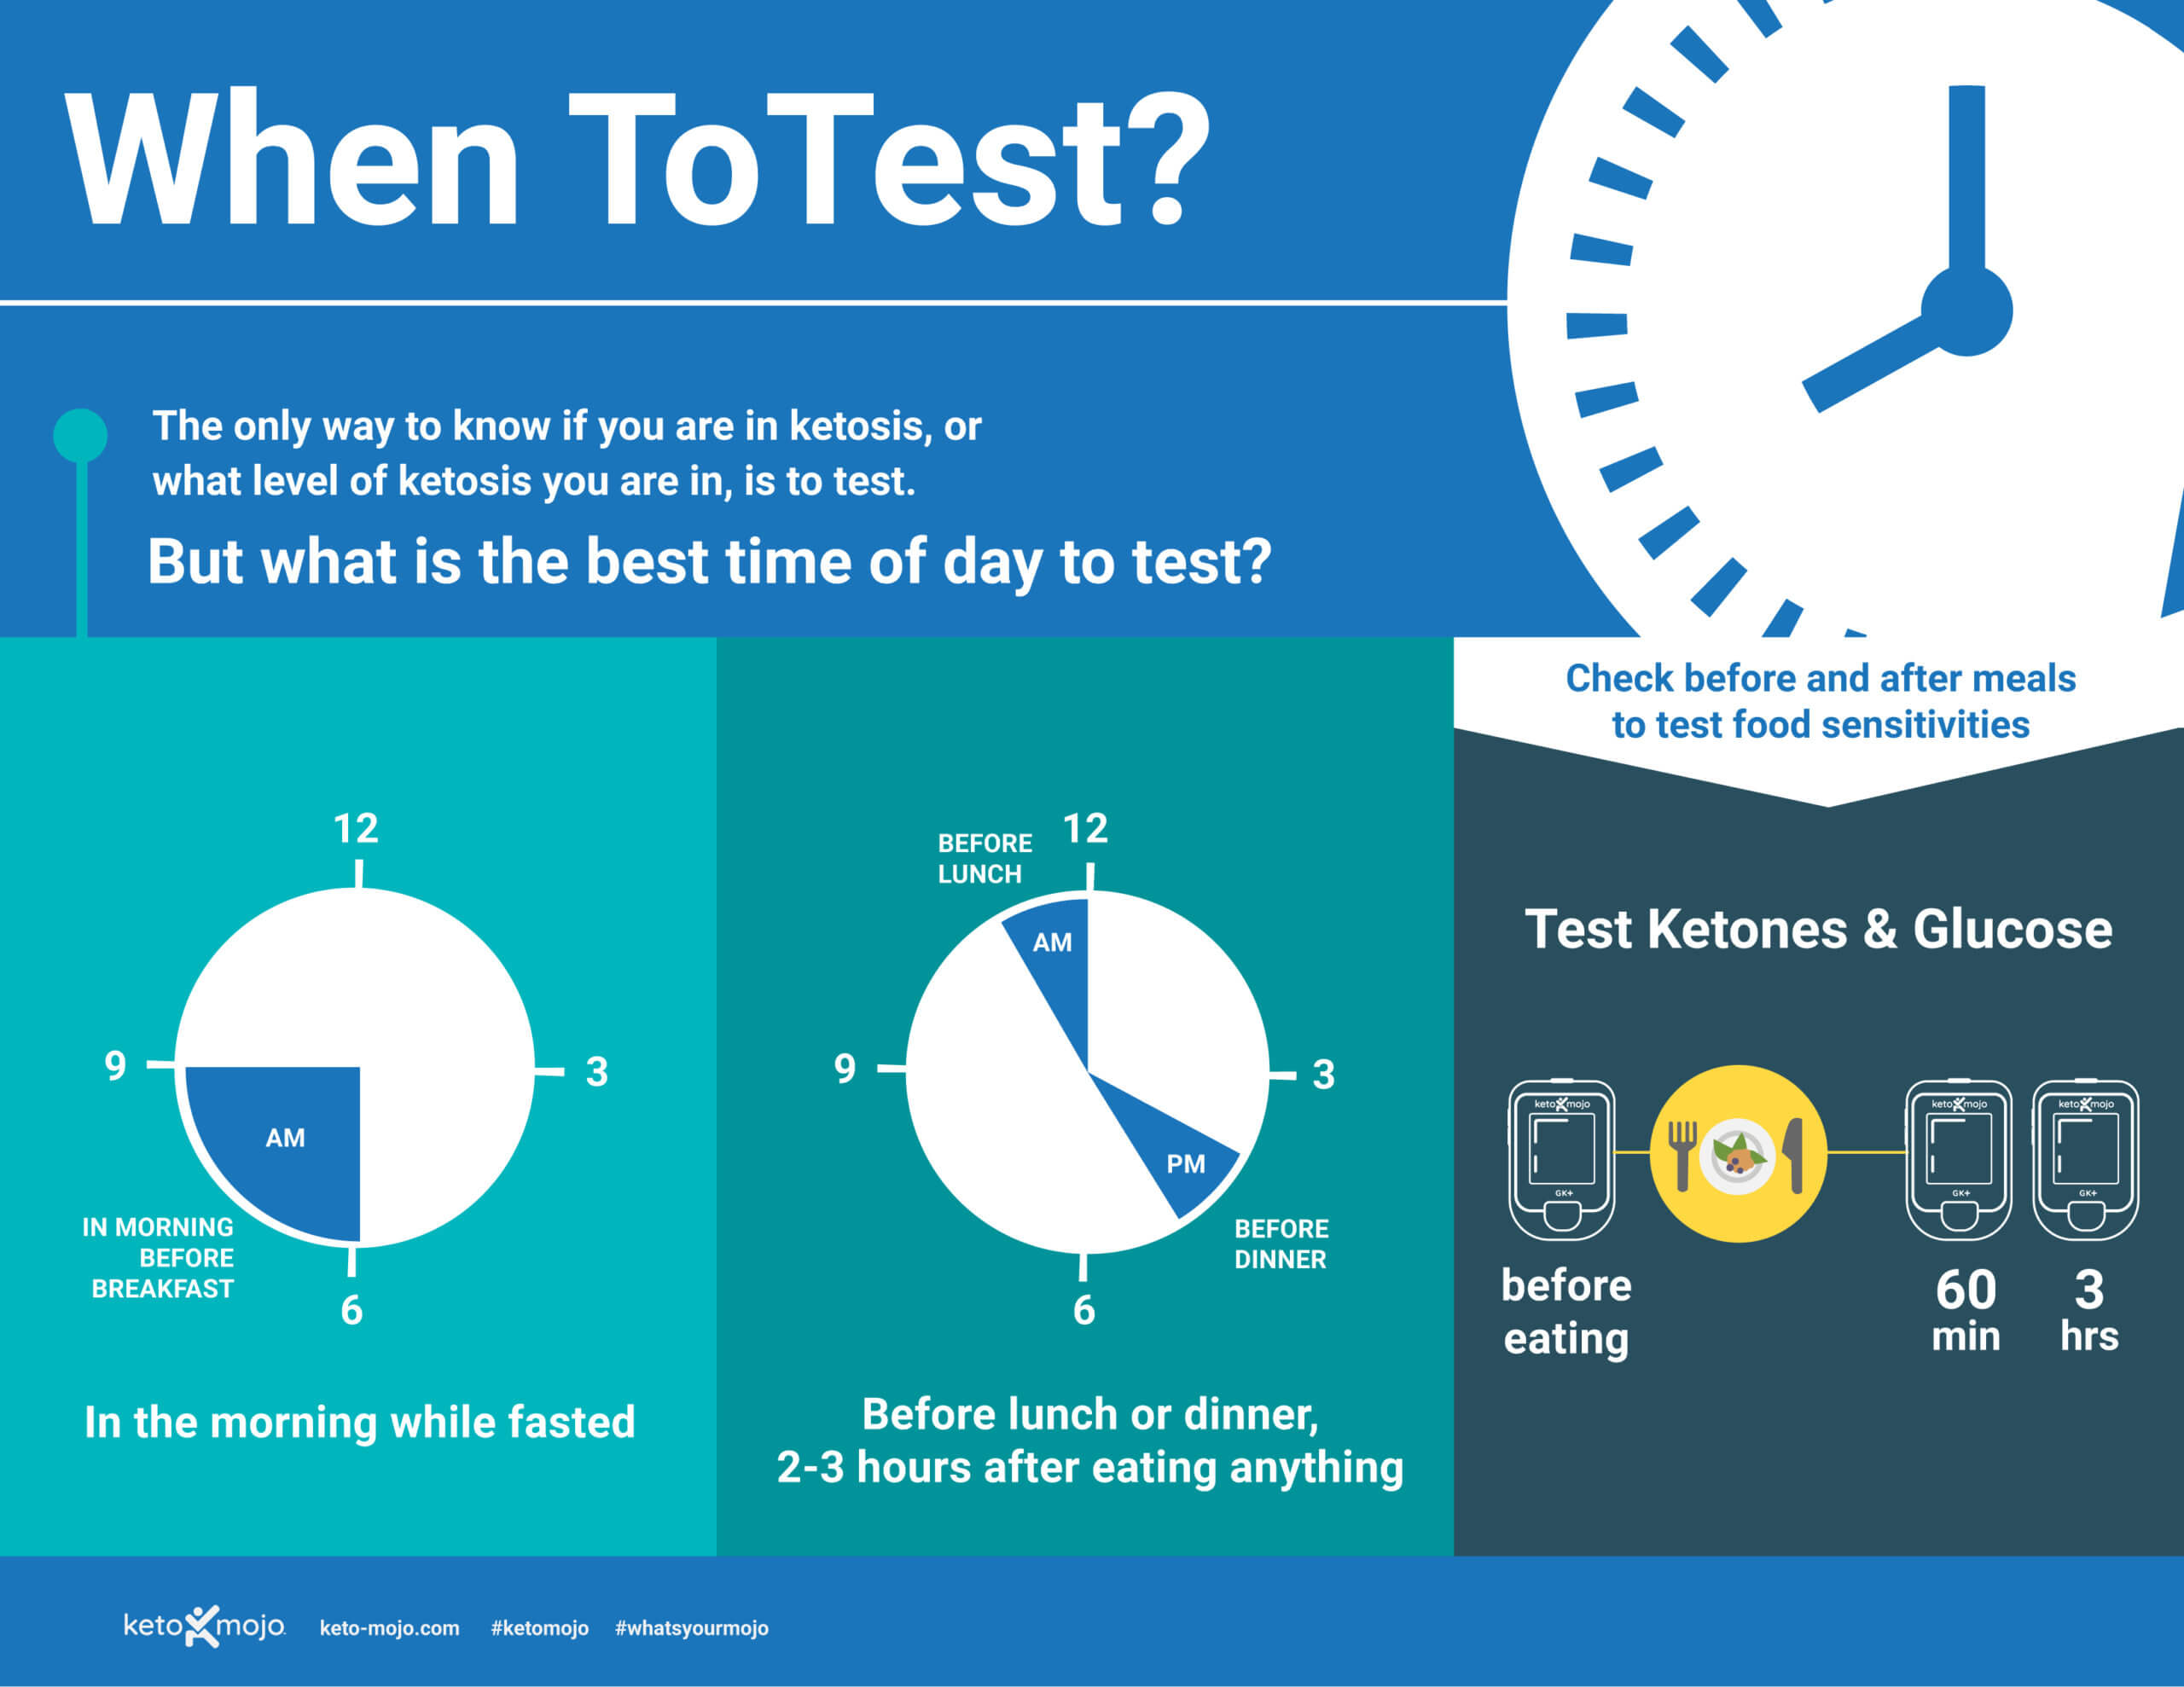 When to Test